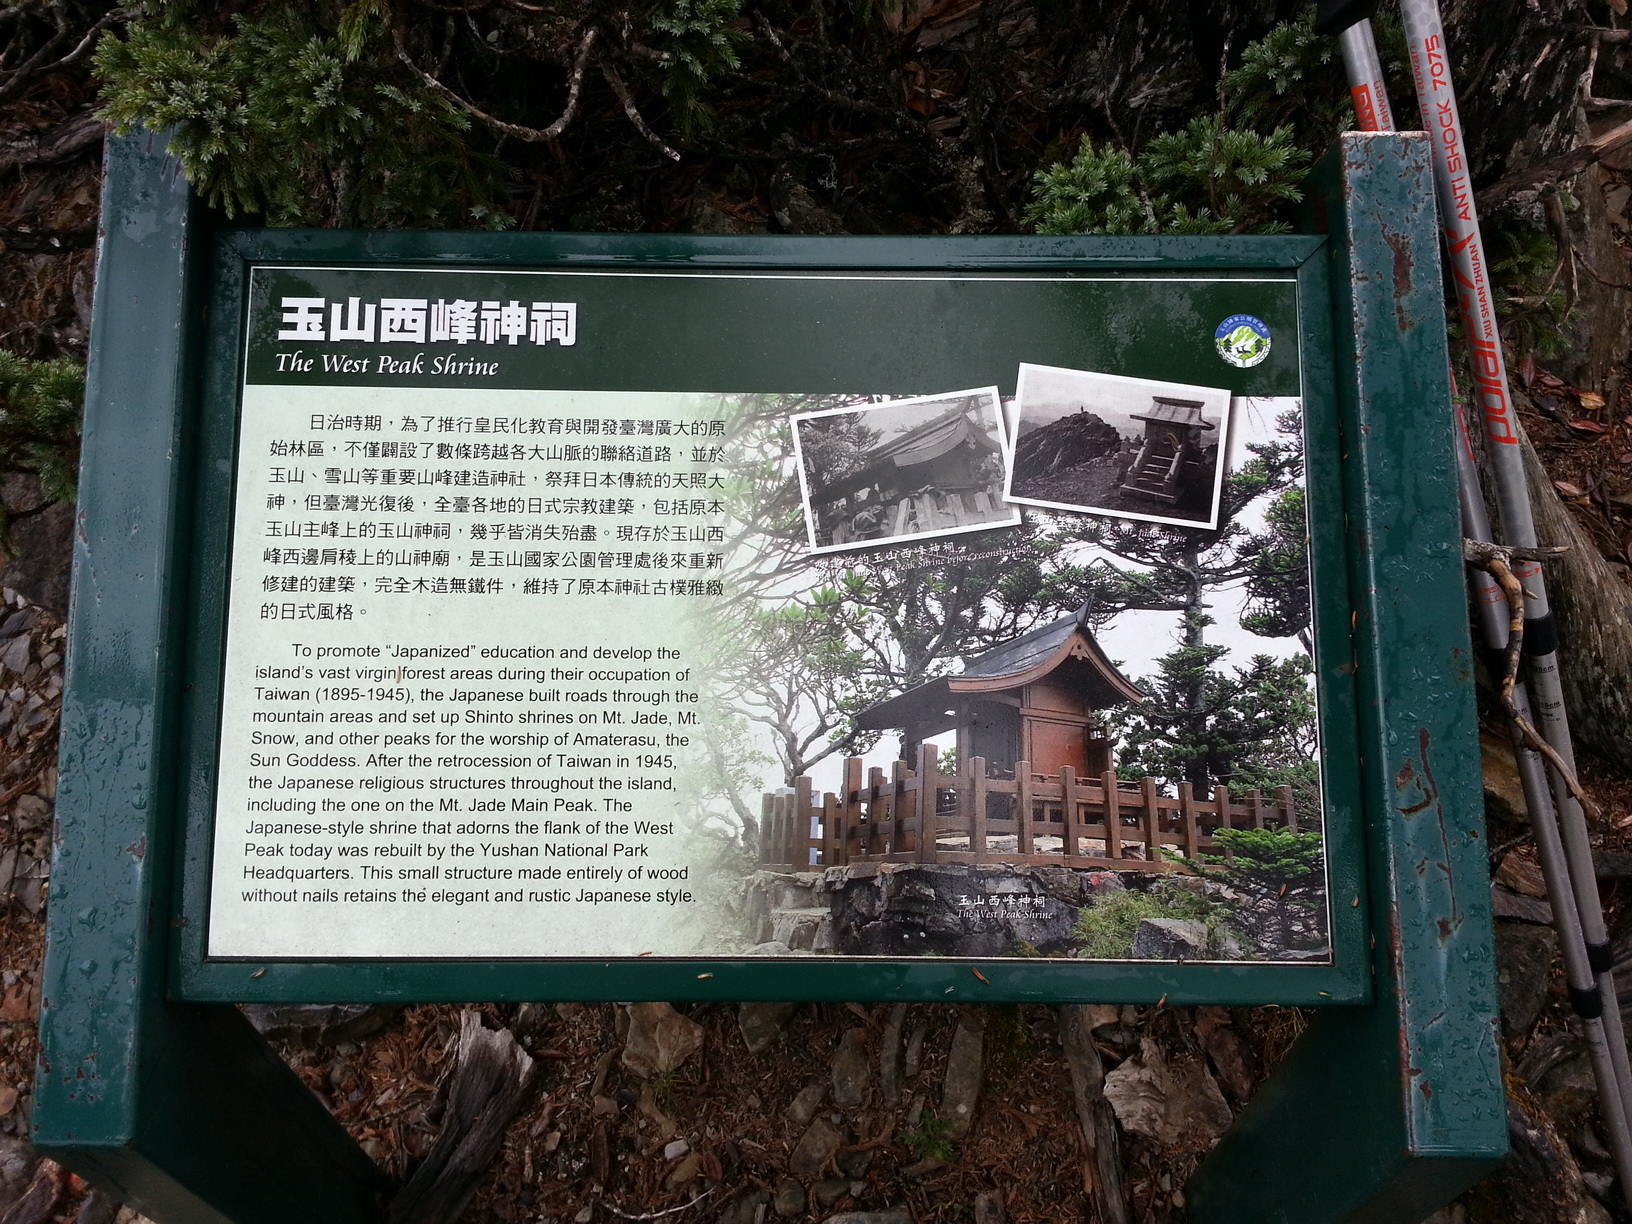 20151103_145311_HDR_resize